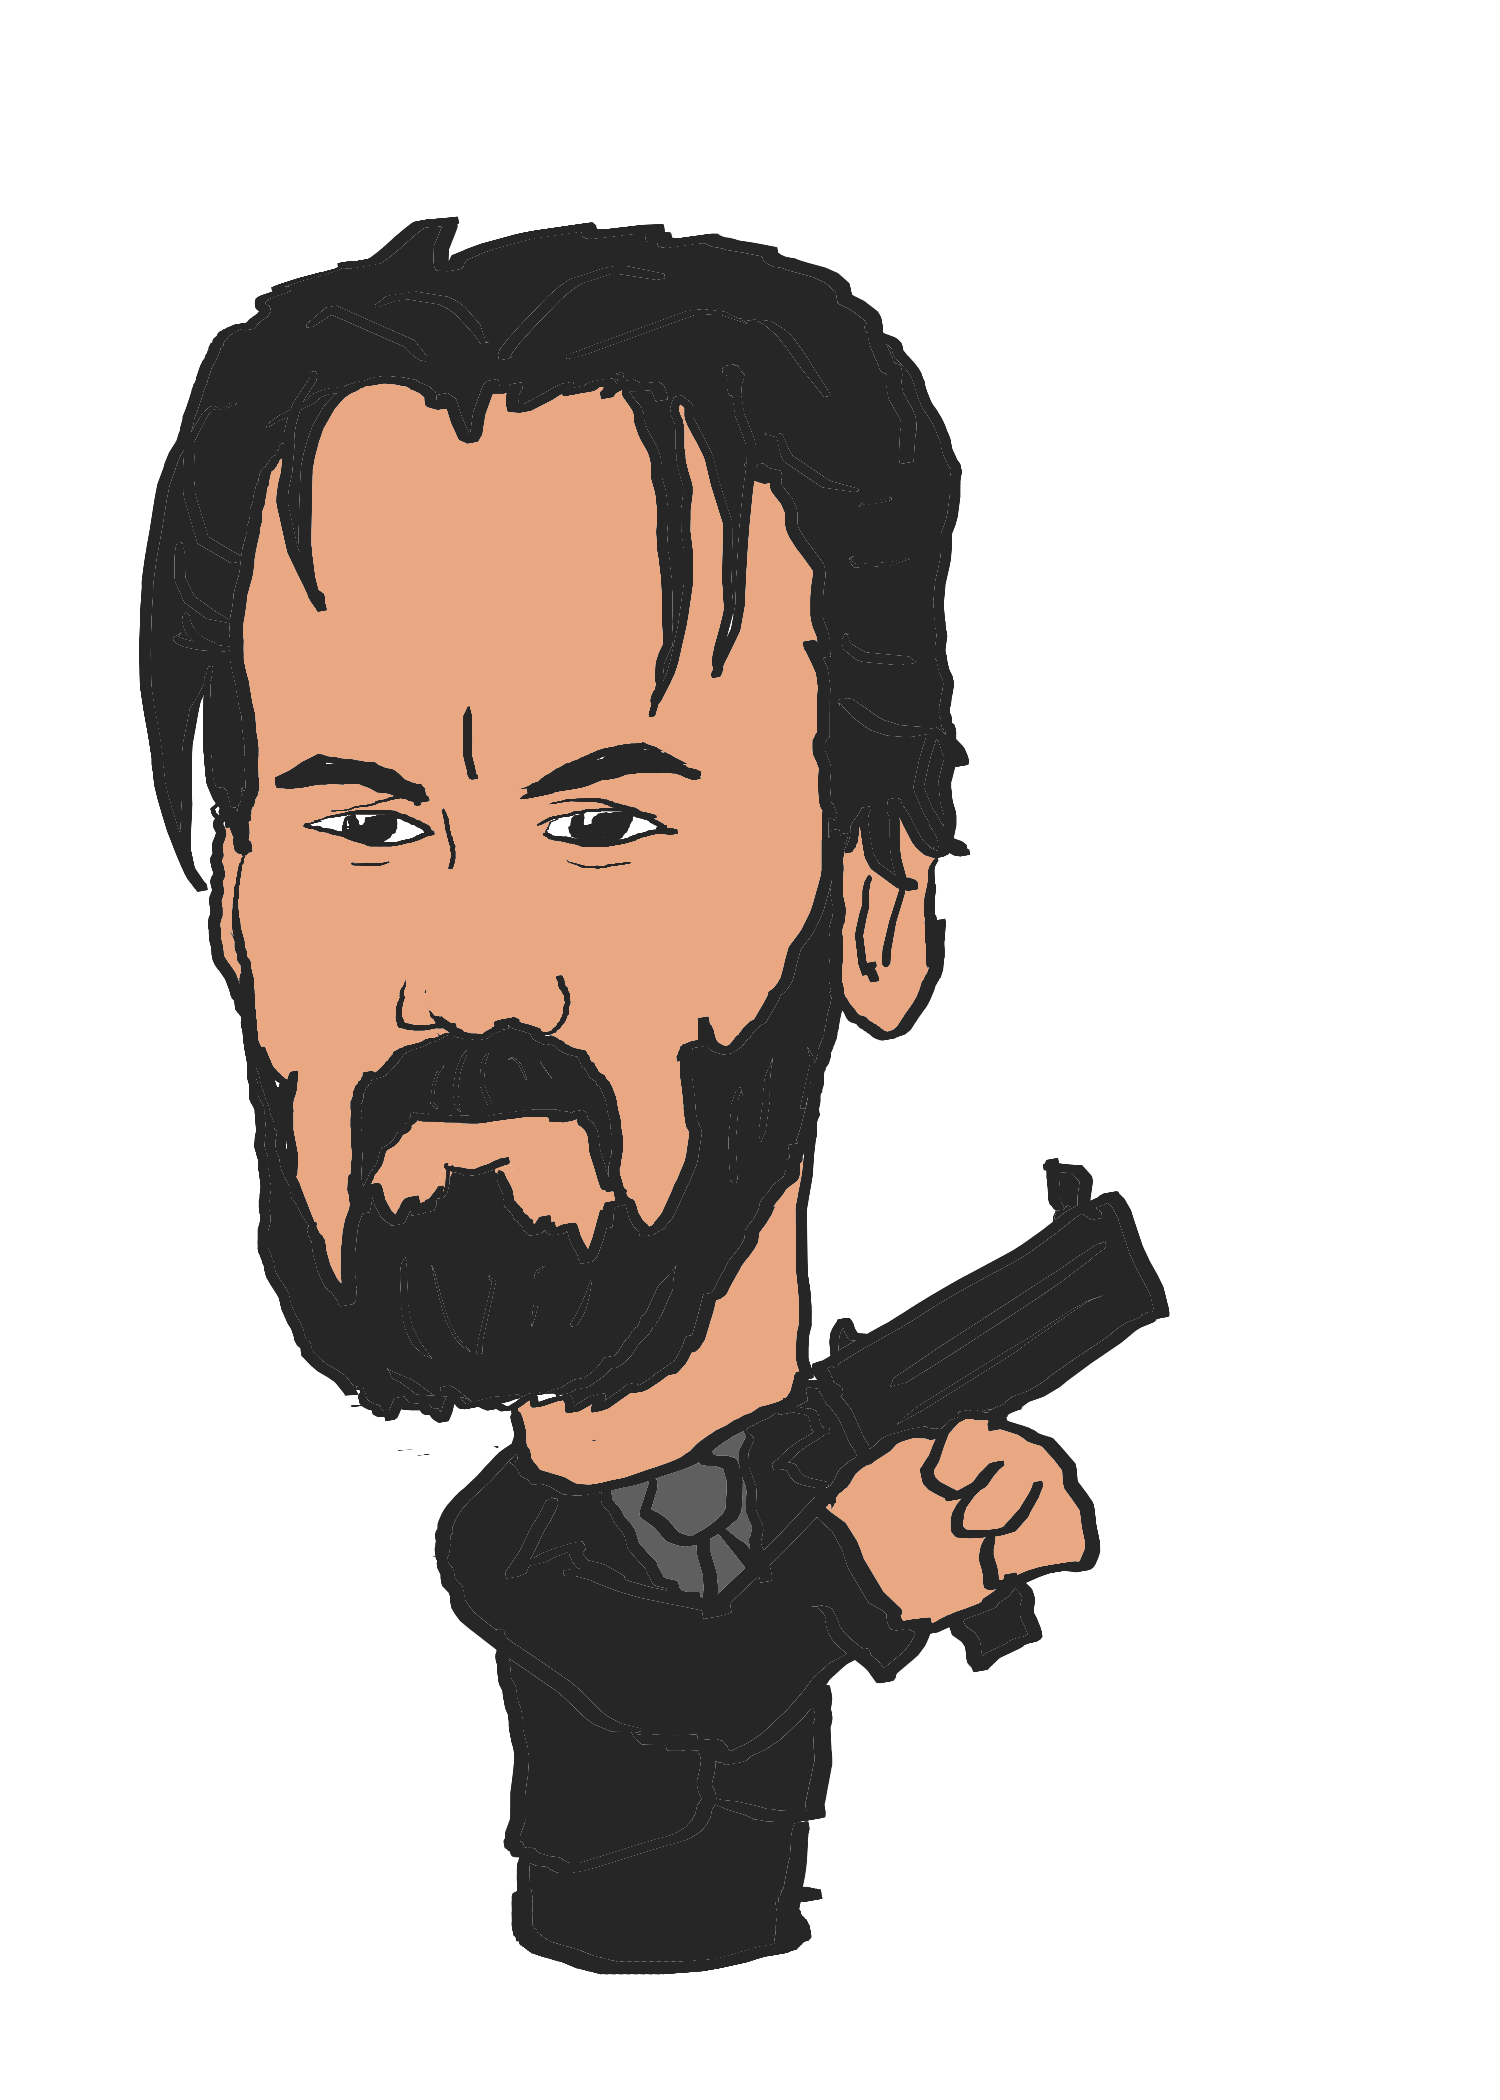 John wick clipart graphic download Keanu Reeves as John Wick by FSudol on DeviantArt graphic download